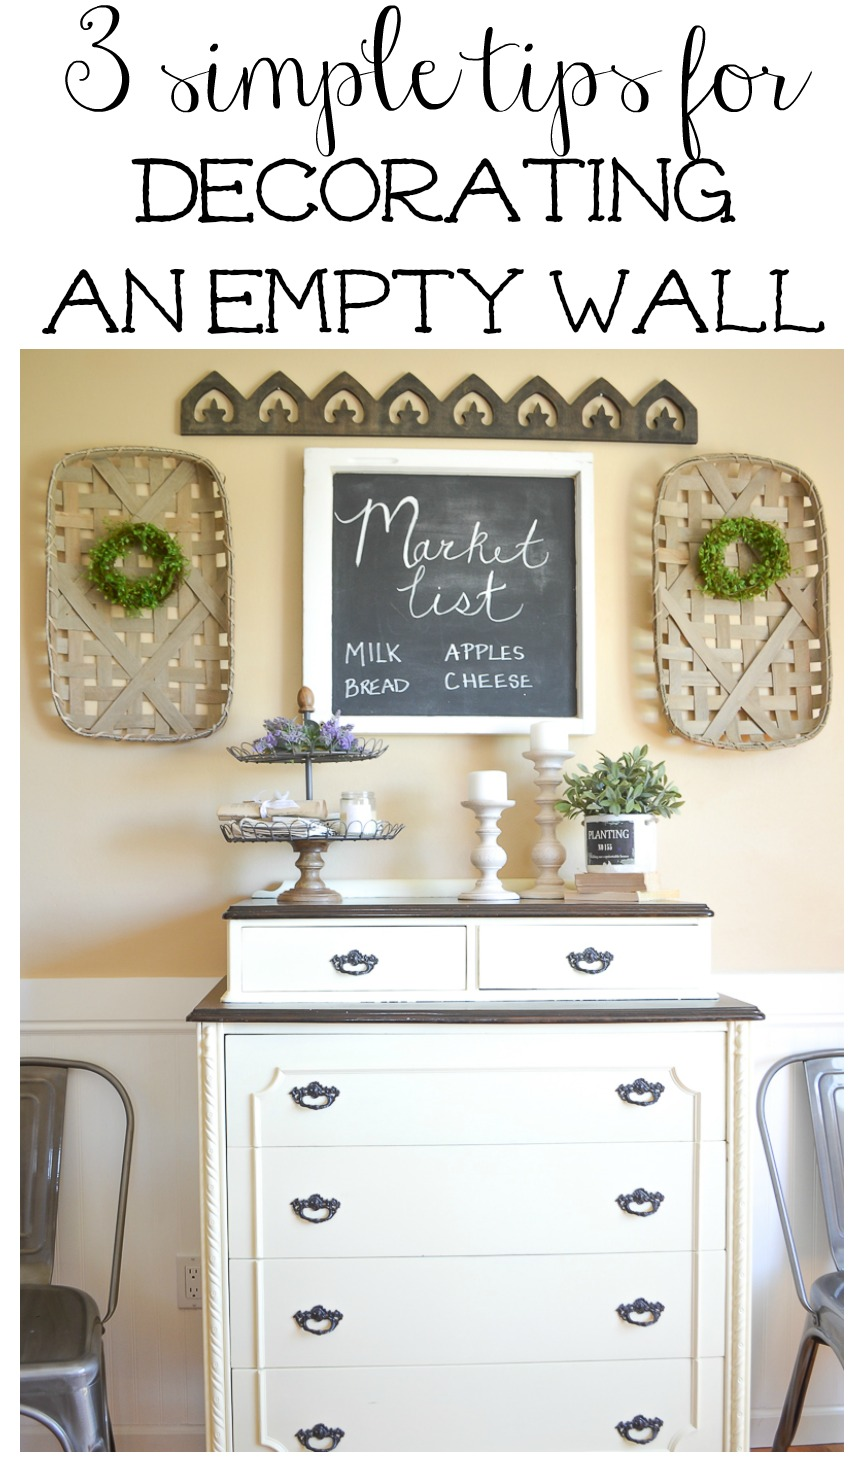 3 simple tips for decorating an empty wall